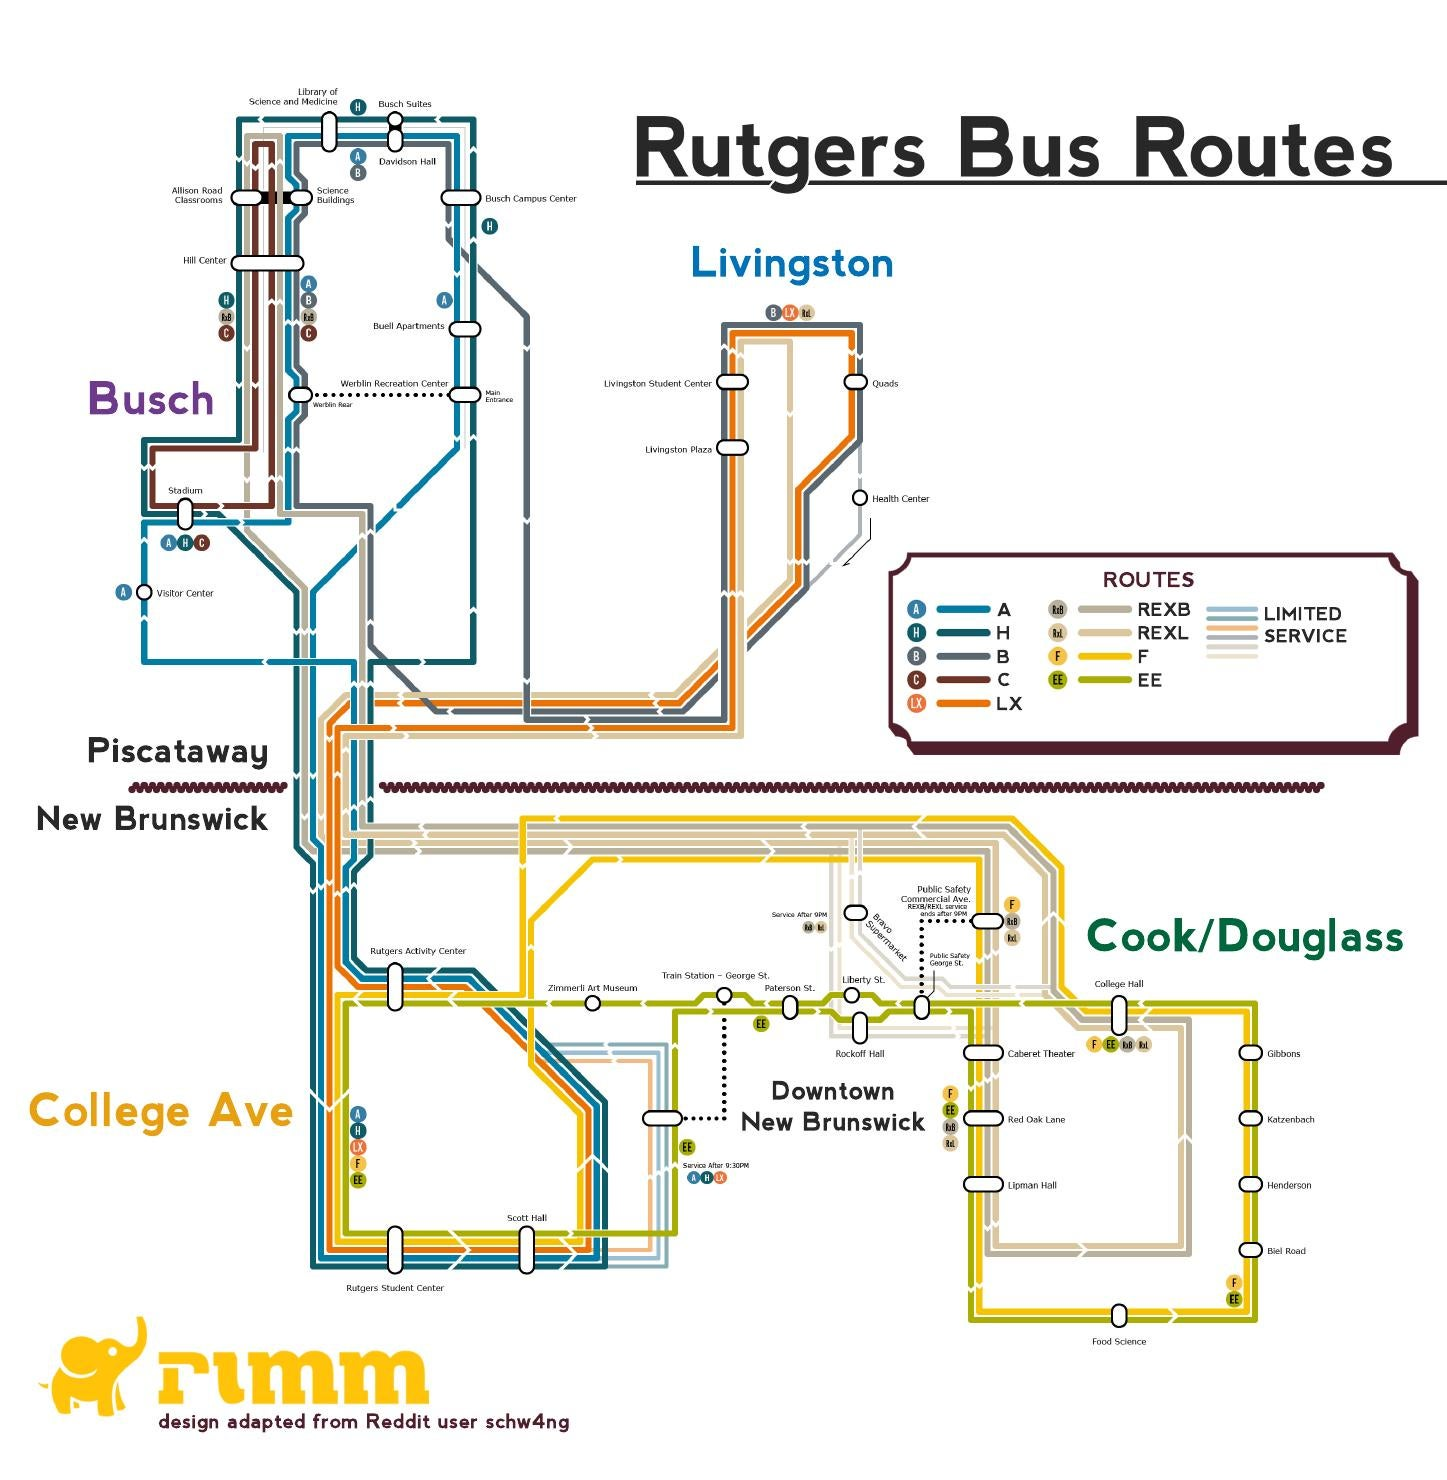 Rutgers Bus Route Map by Rutgers University Marketing and ...